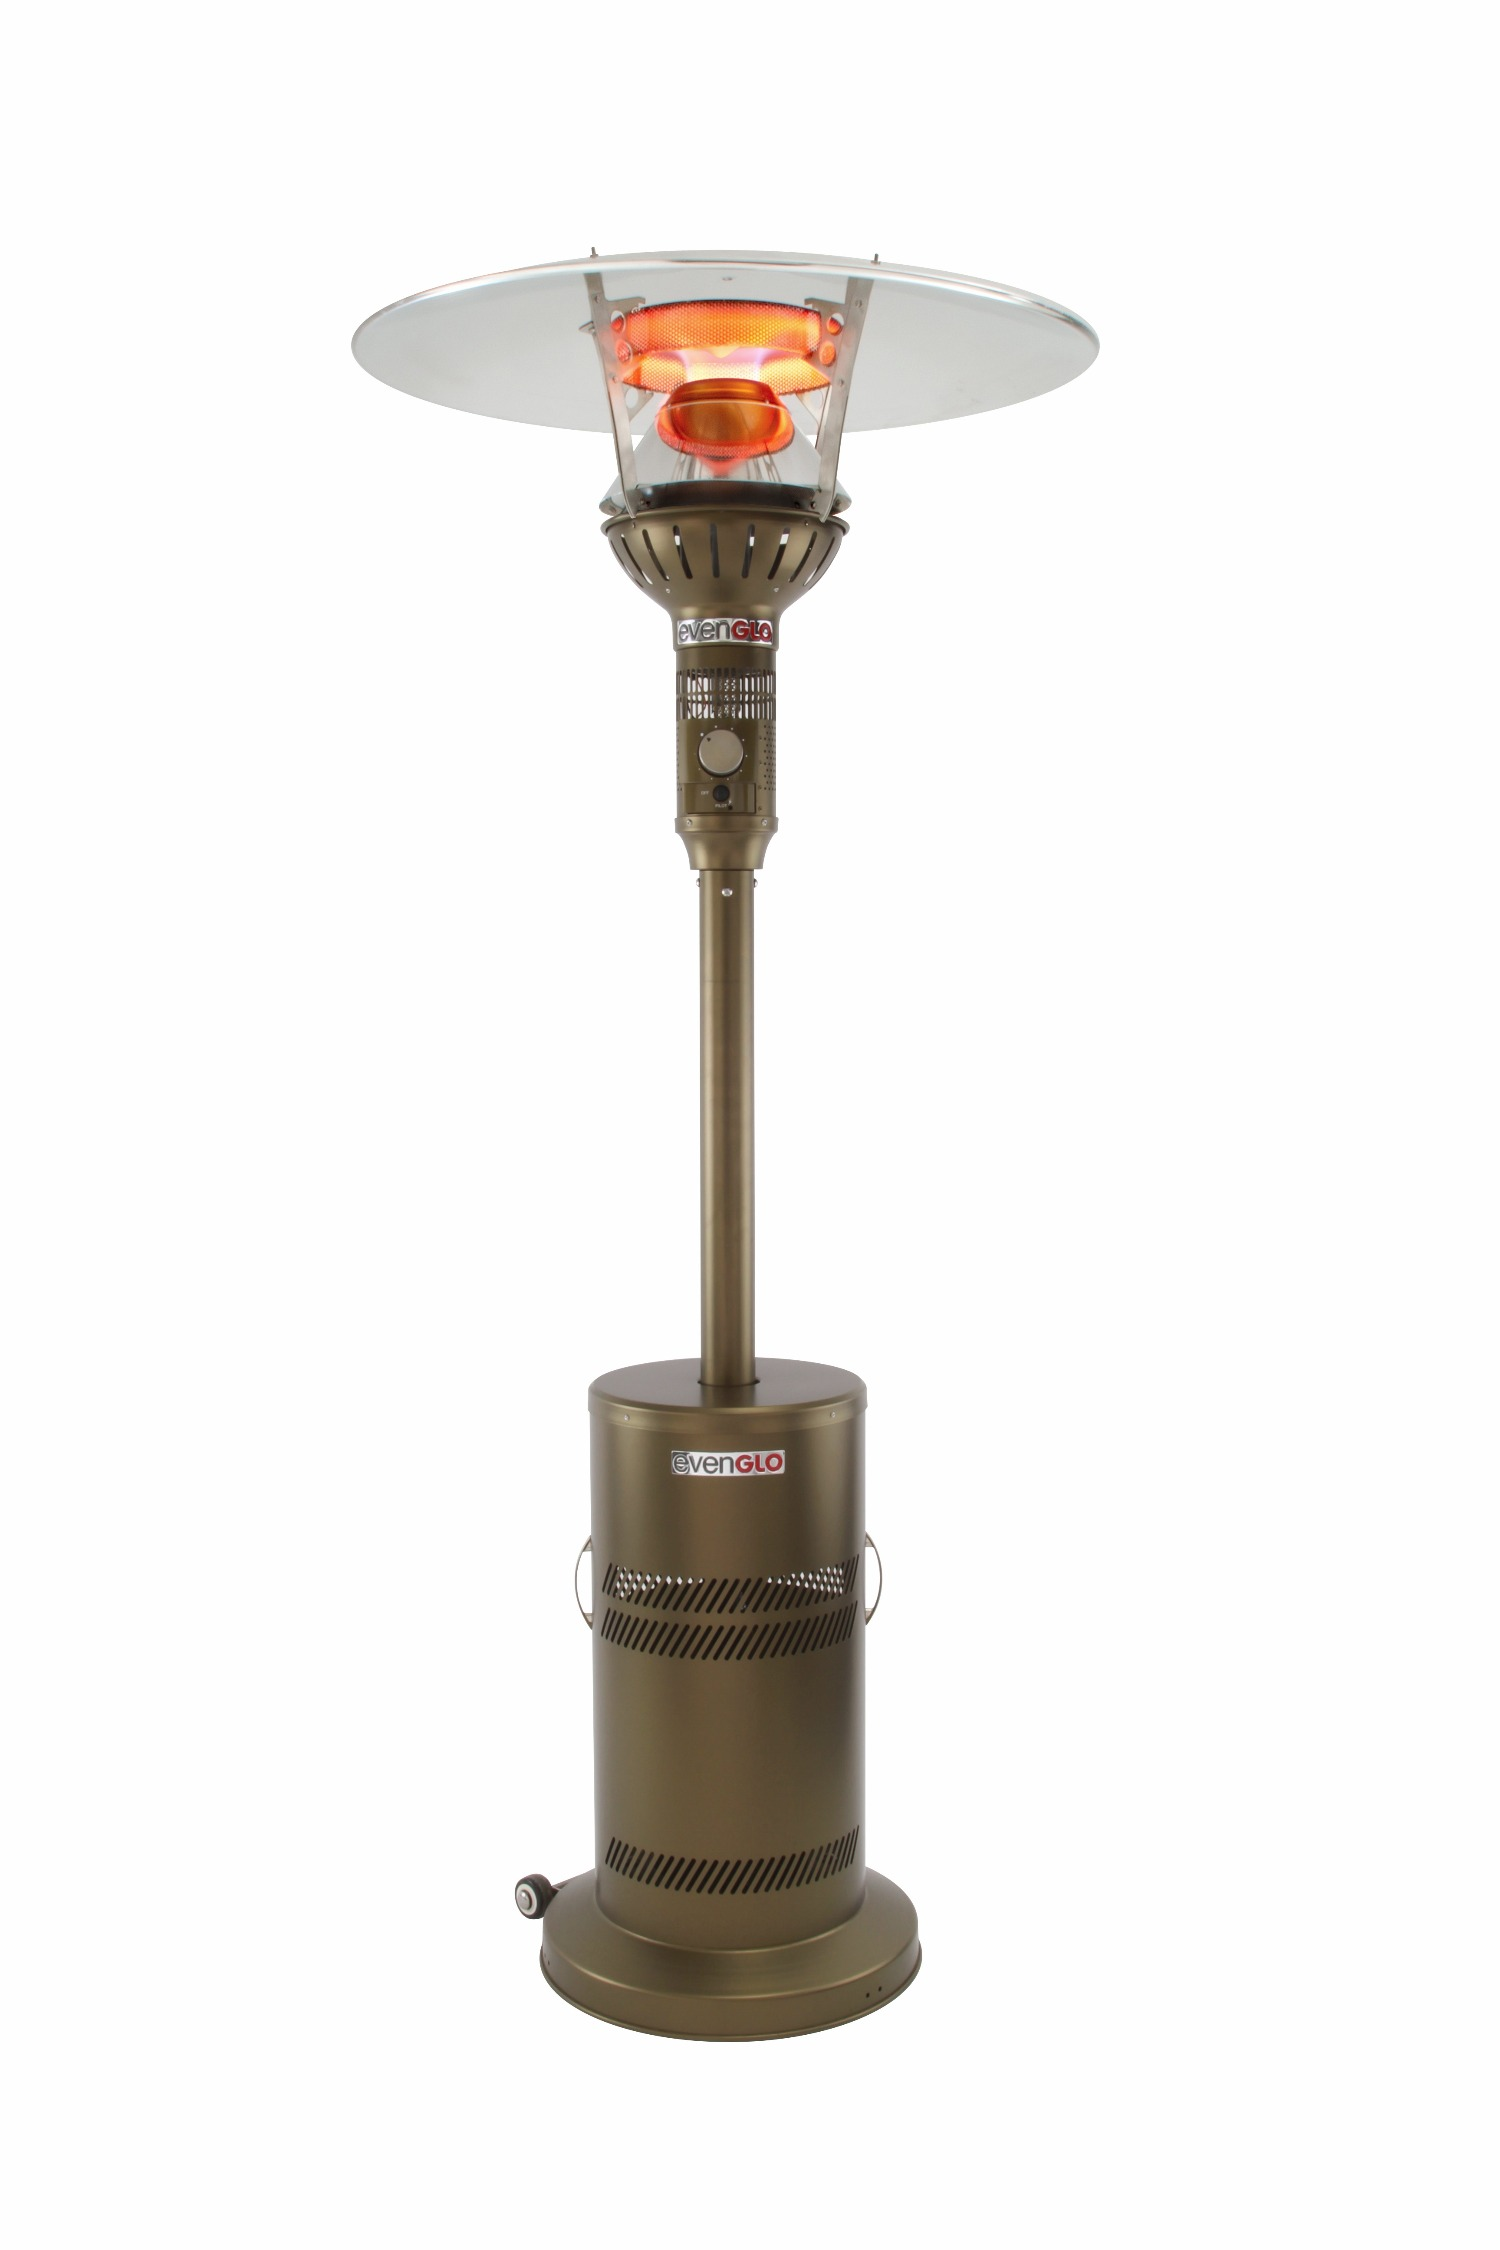 EvenGlo Outdoor Patio Heater